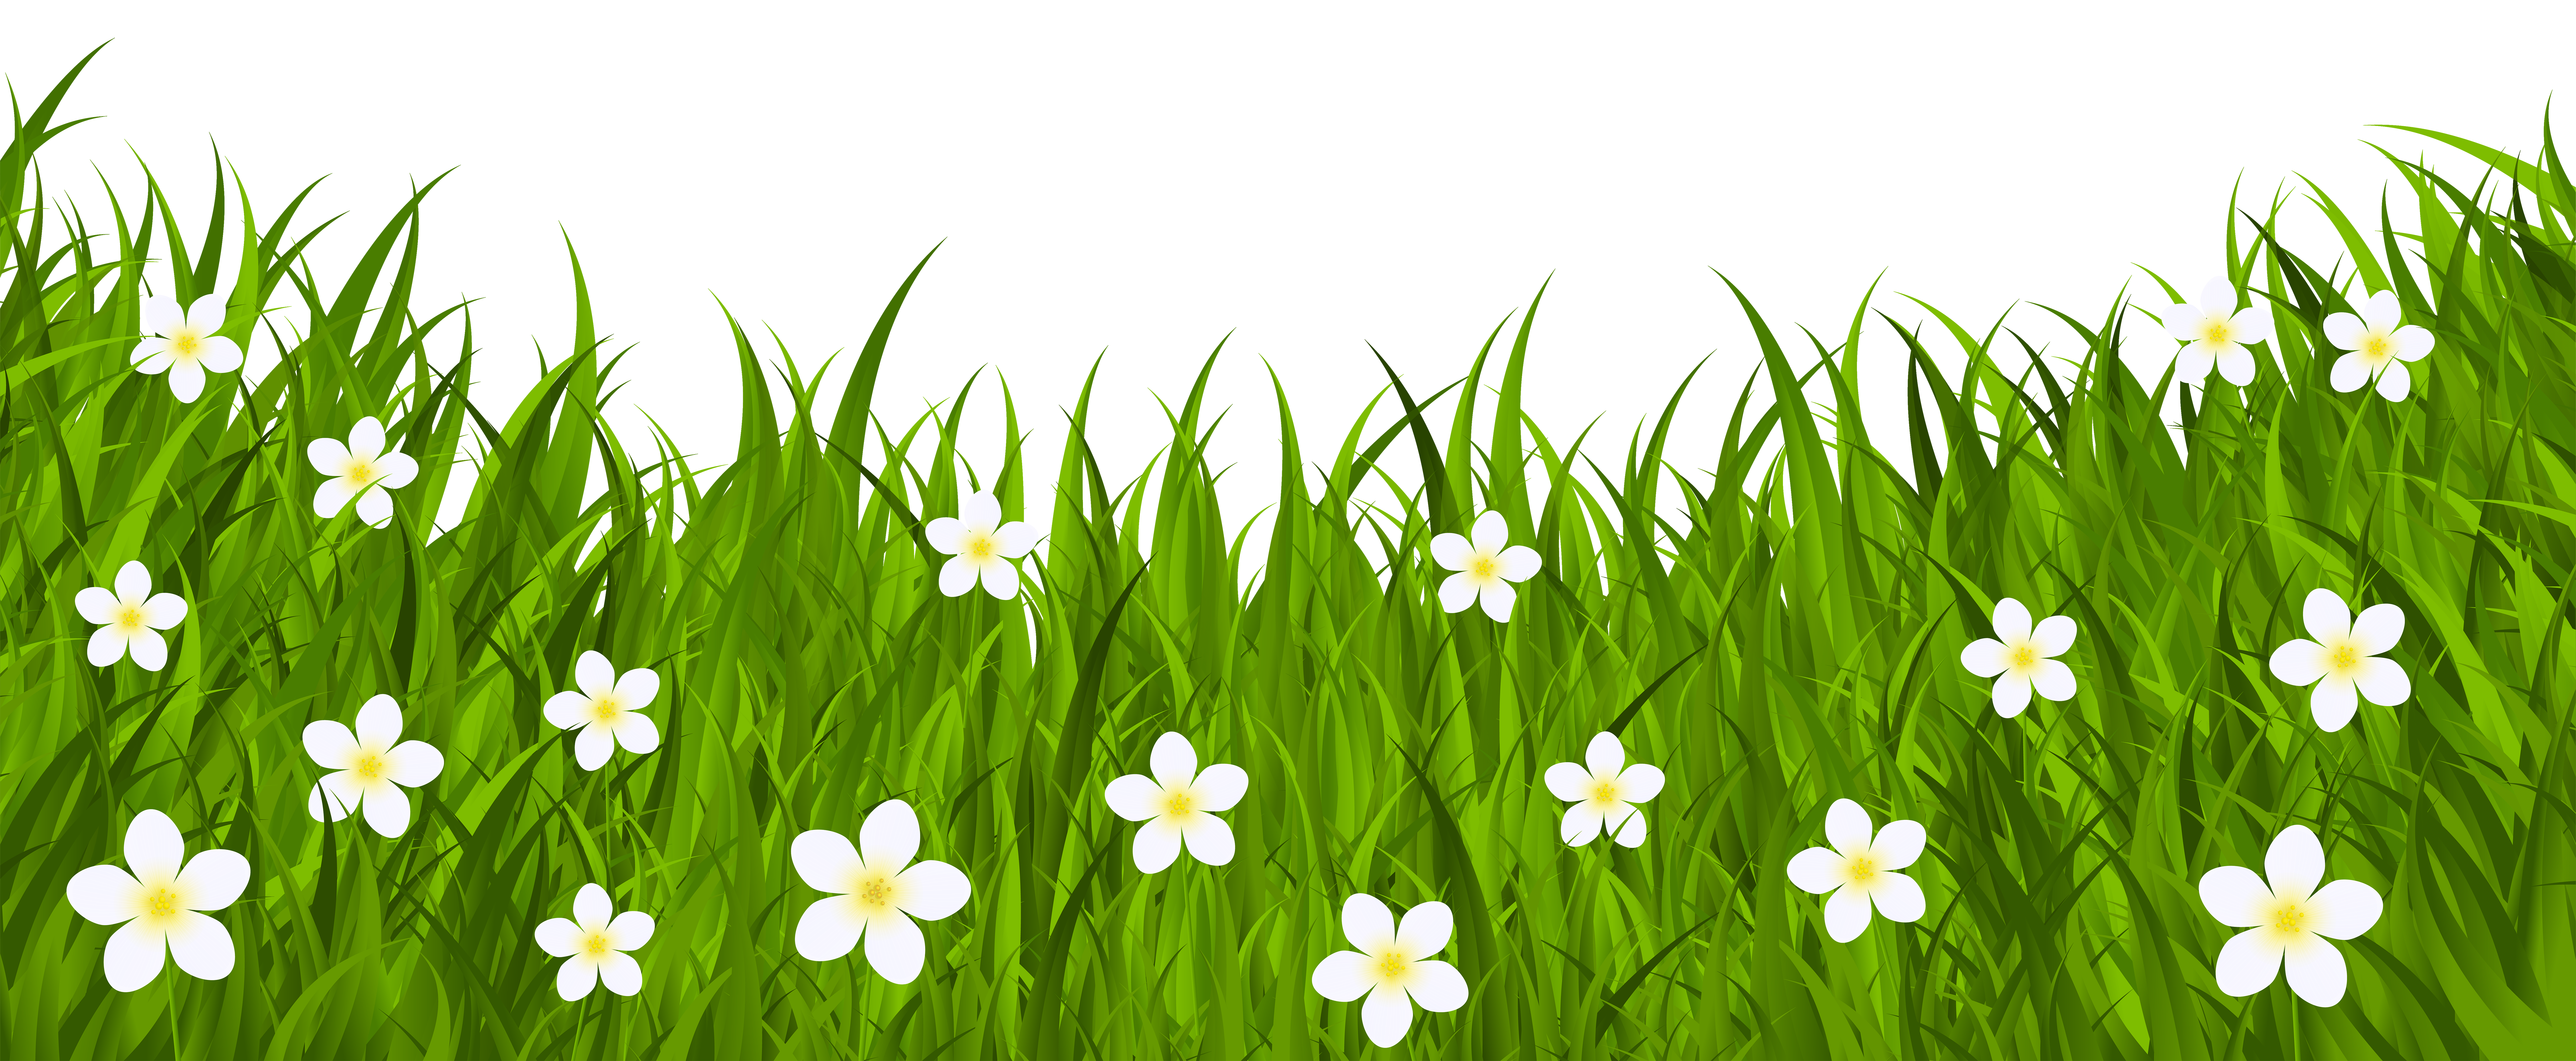 Grass ground with flowers. Dirt clipart plant